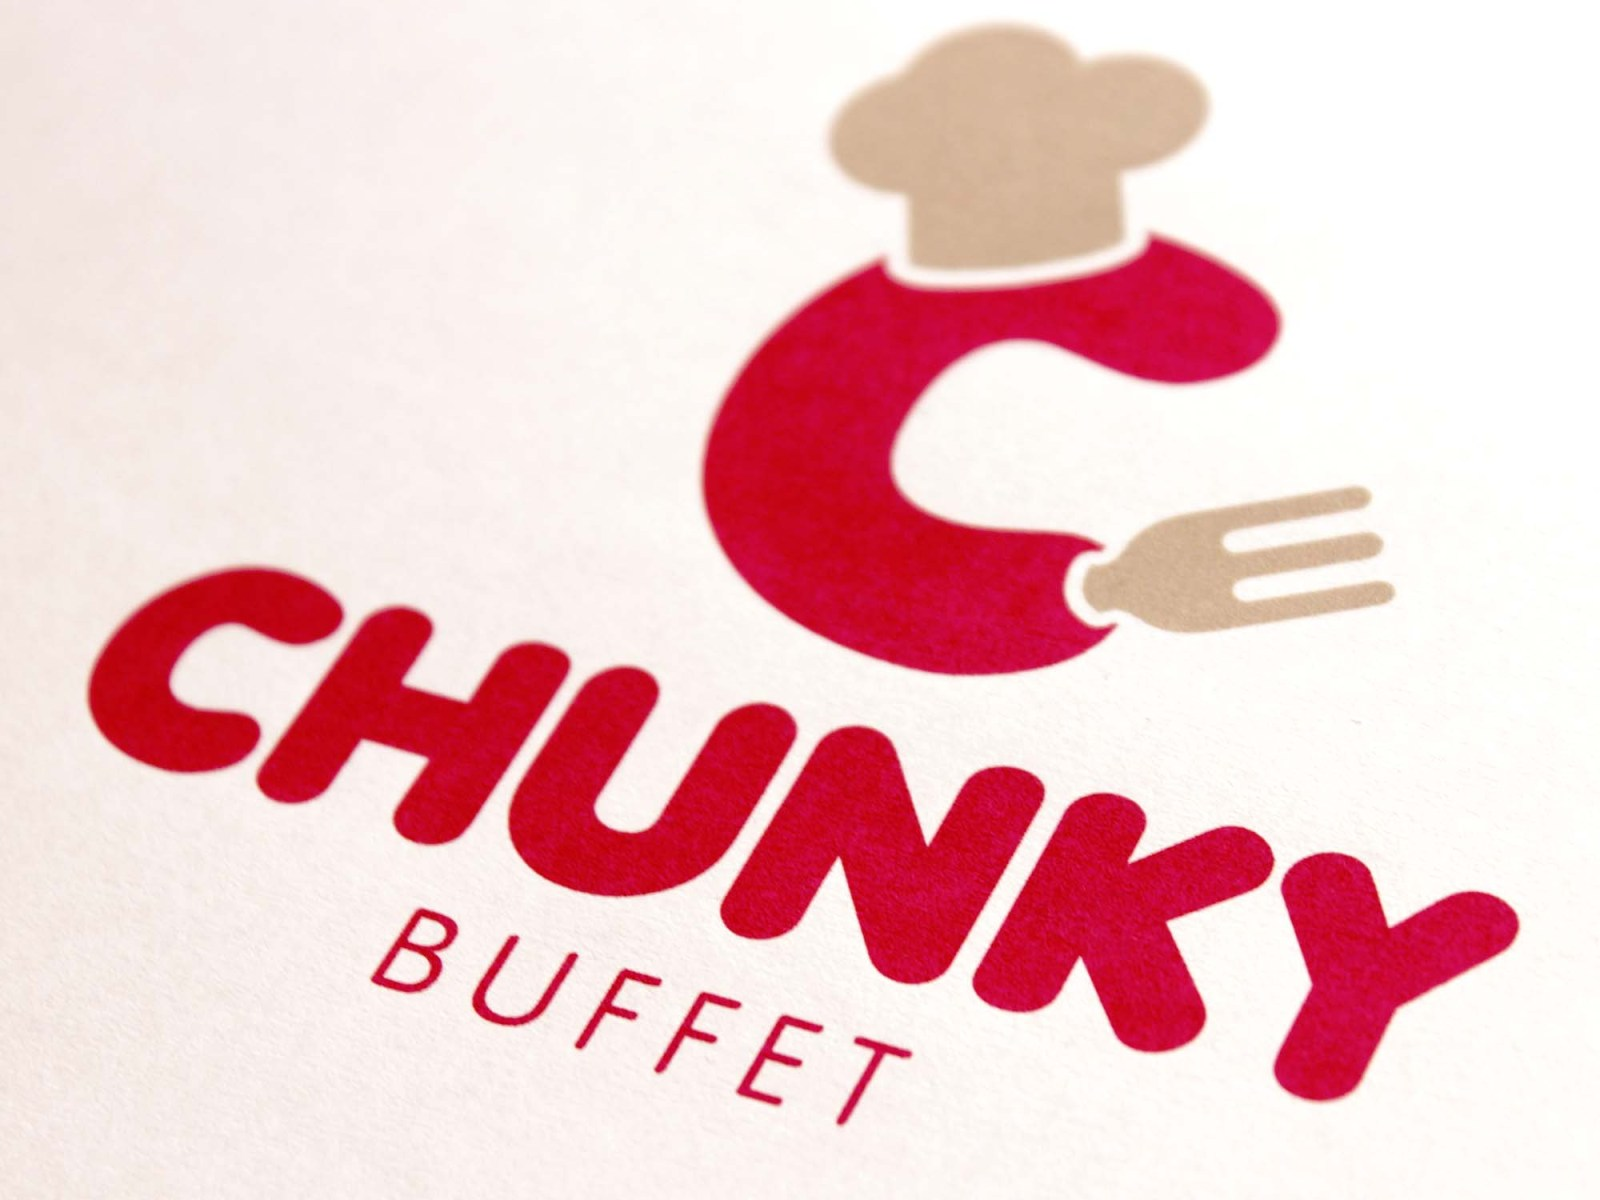 Chunky-Buffet-logo_0001_Layer 16